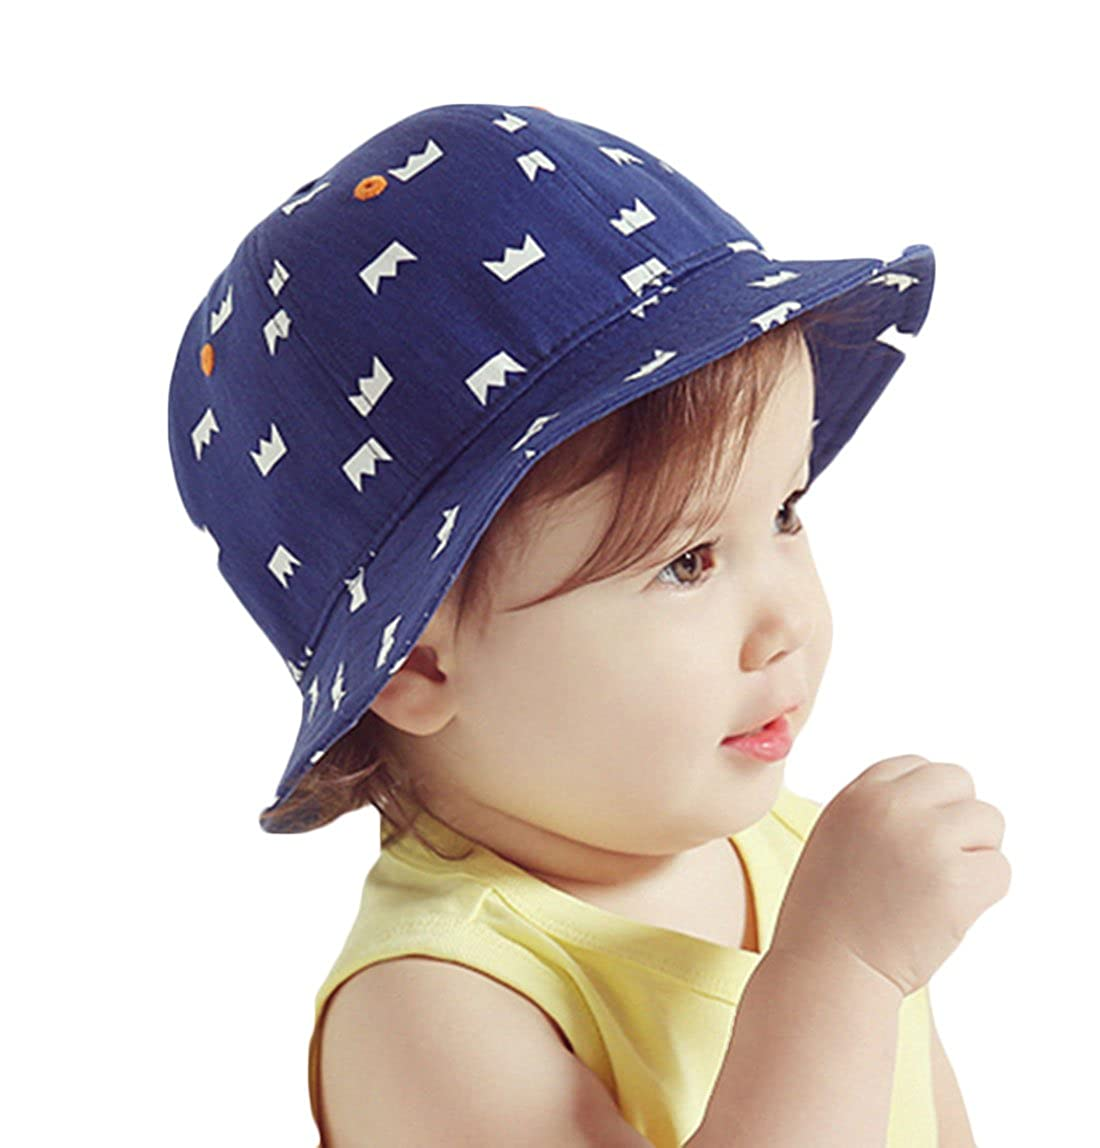 95e7a0cf Amazon.com: Baby Toddler Kids Sun Hat with Chin Strap, Adjustable Head  Size, 50+ UPF Cotton: Clothing